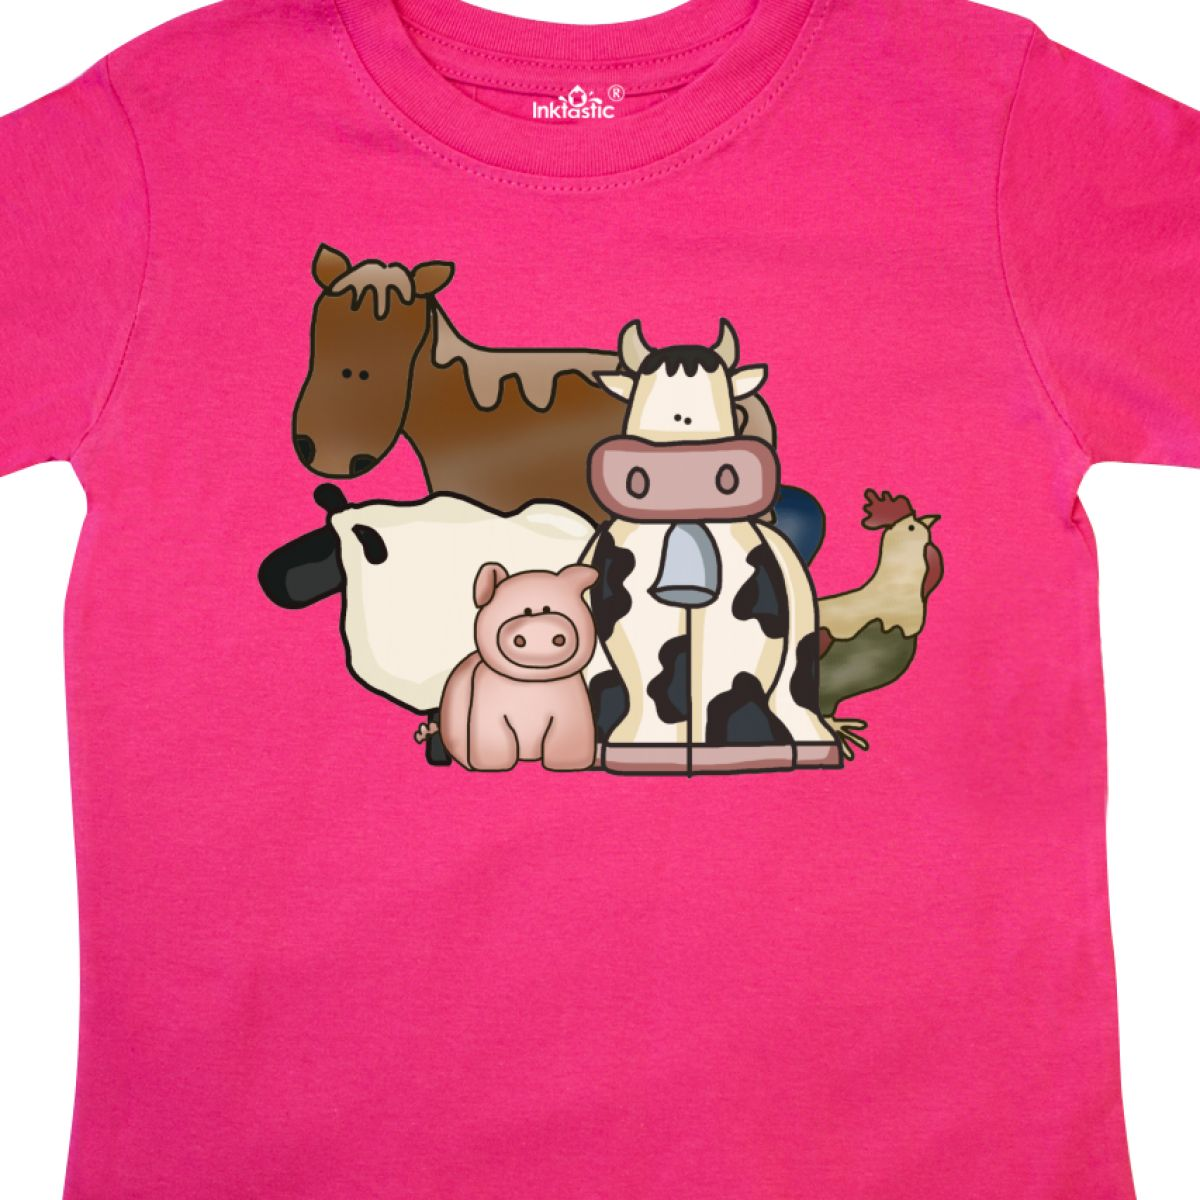 Inktastic-Critters-Toddler-T-Shirt-Horse-Sheep-Cow-Chicken-Pig-Farm-Animals-Gift thumbnail 12